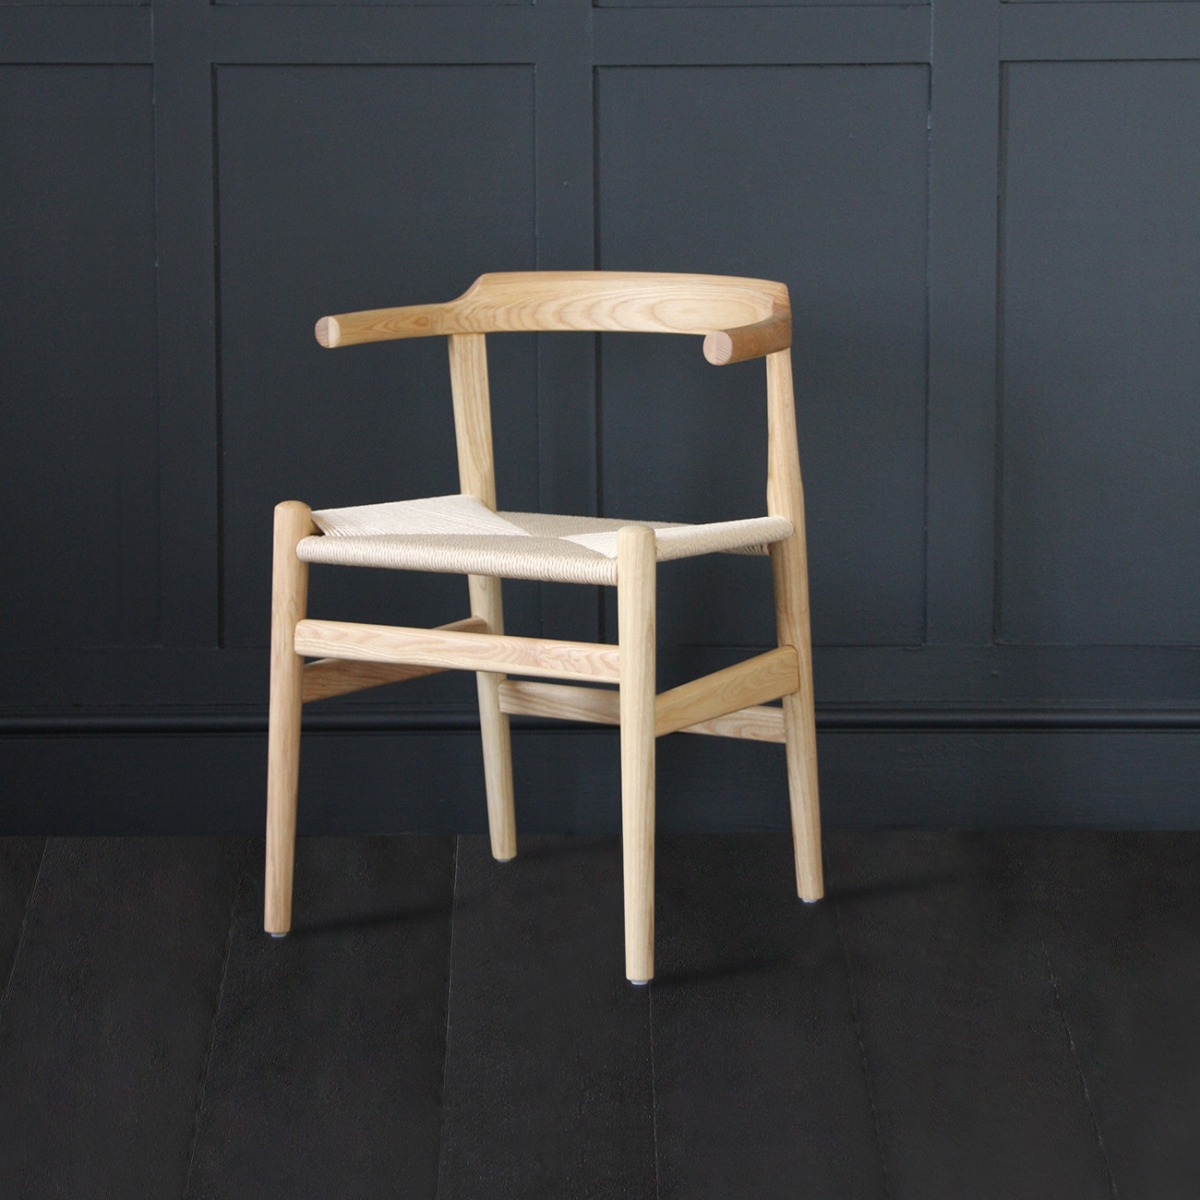 A CHAIR inspired by Hans Wegner Style - Ash - Natural Paper Coil